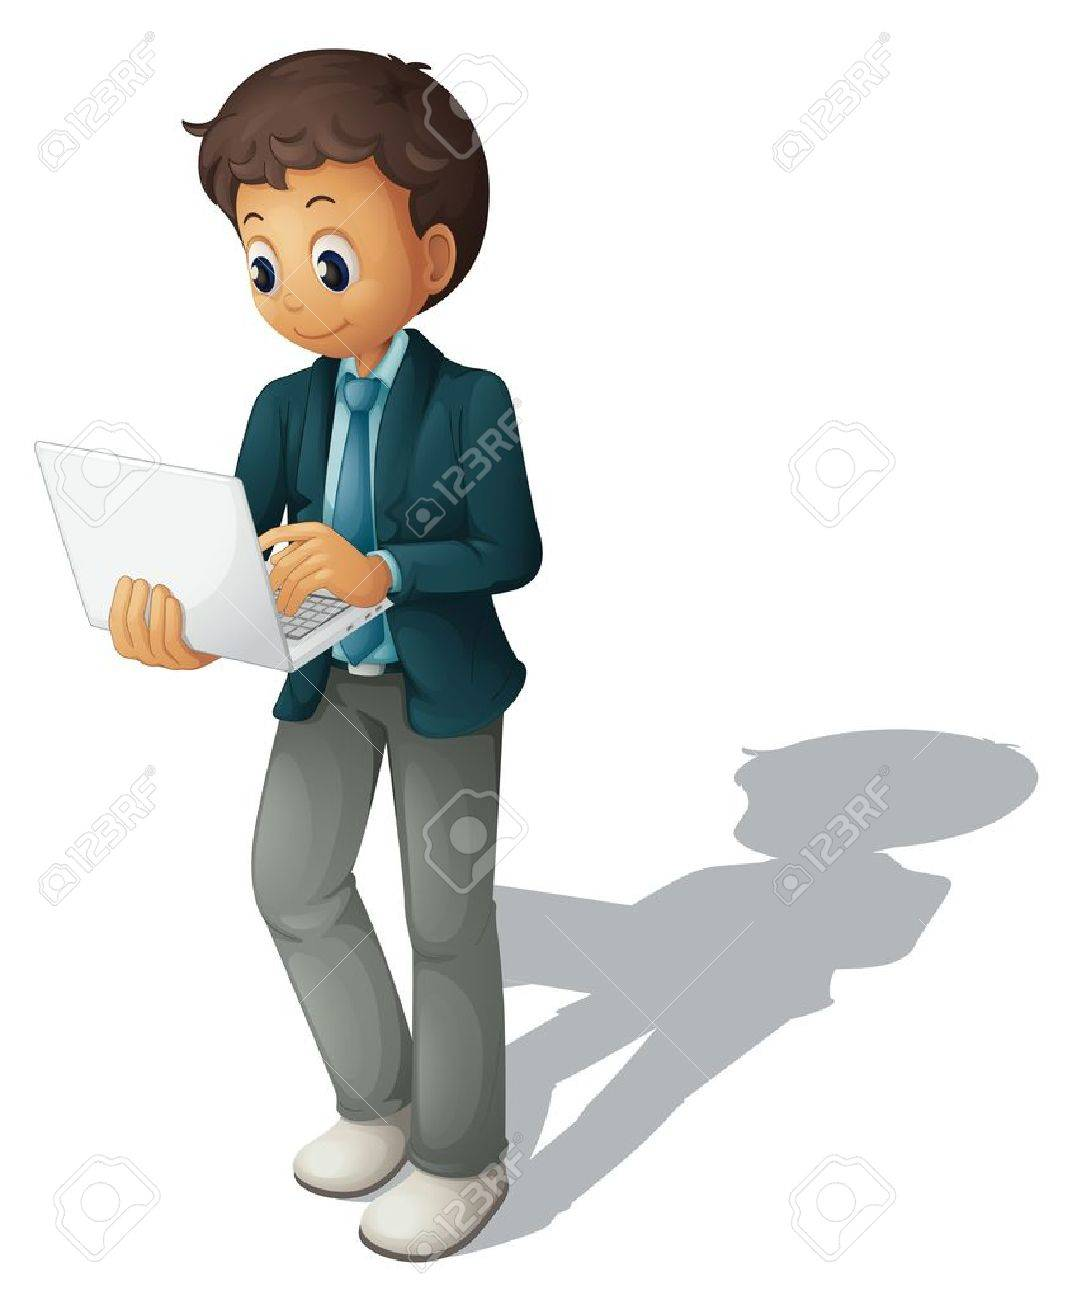 Illustration of a business guy using a computer - 13930767